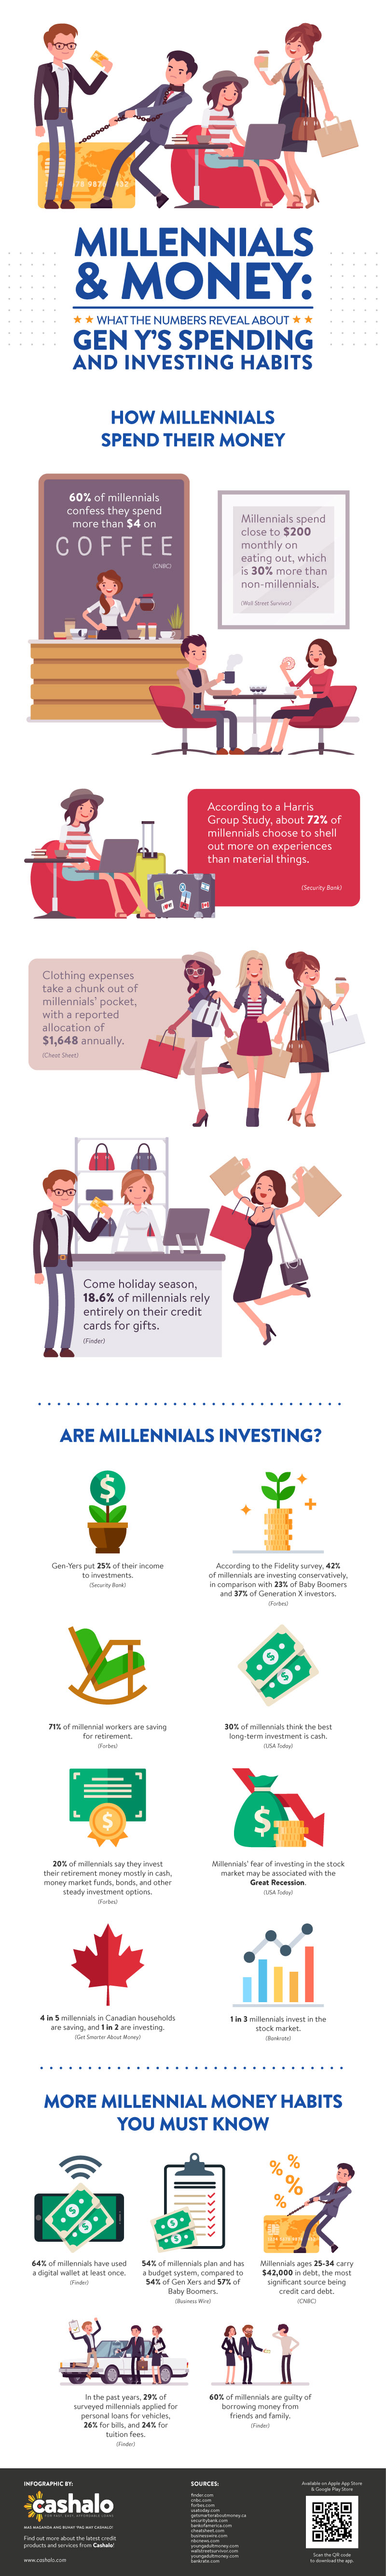 Millennials & Money: What the Numbers Reveal About Gen Y's Spending and Investing Habits